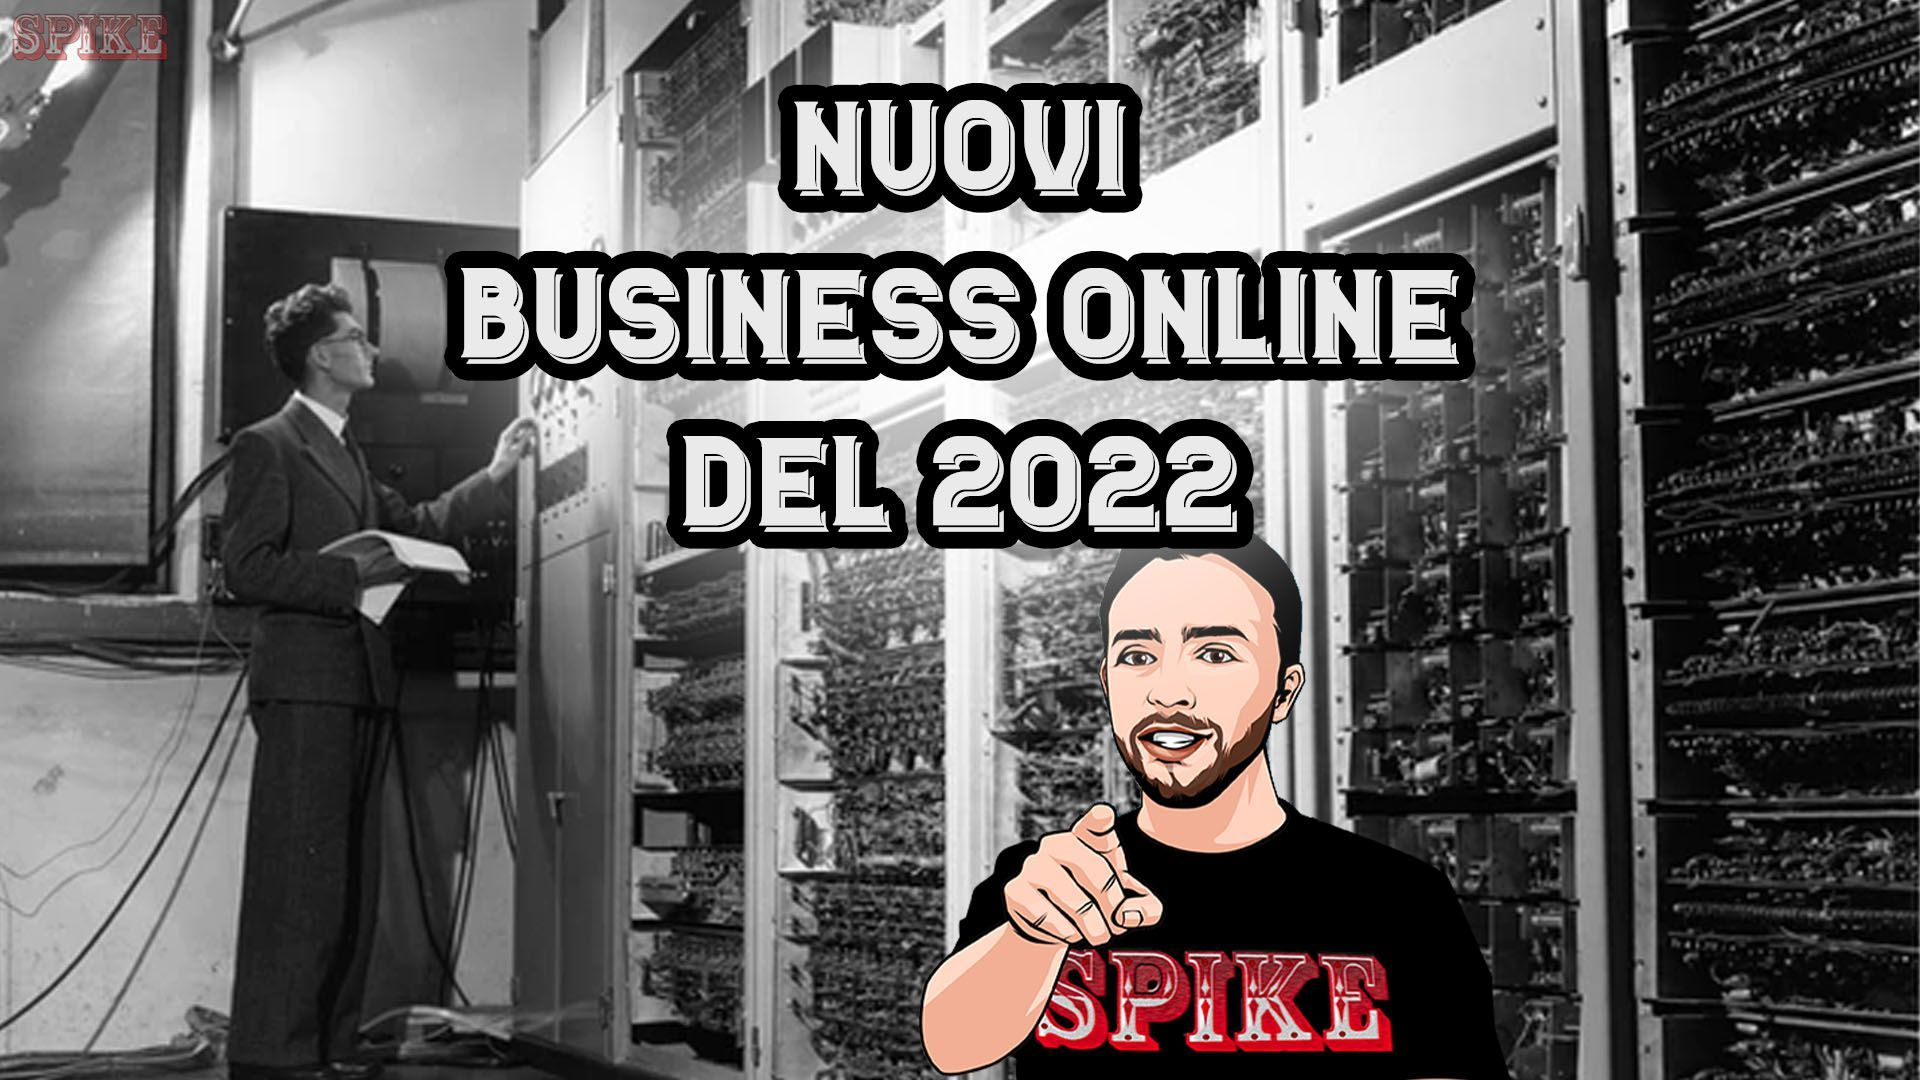 2022 Nuove Industrie dell'Online